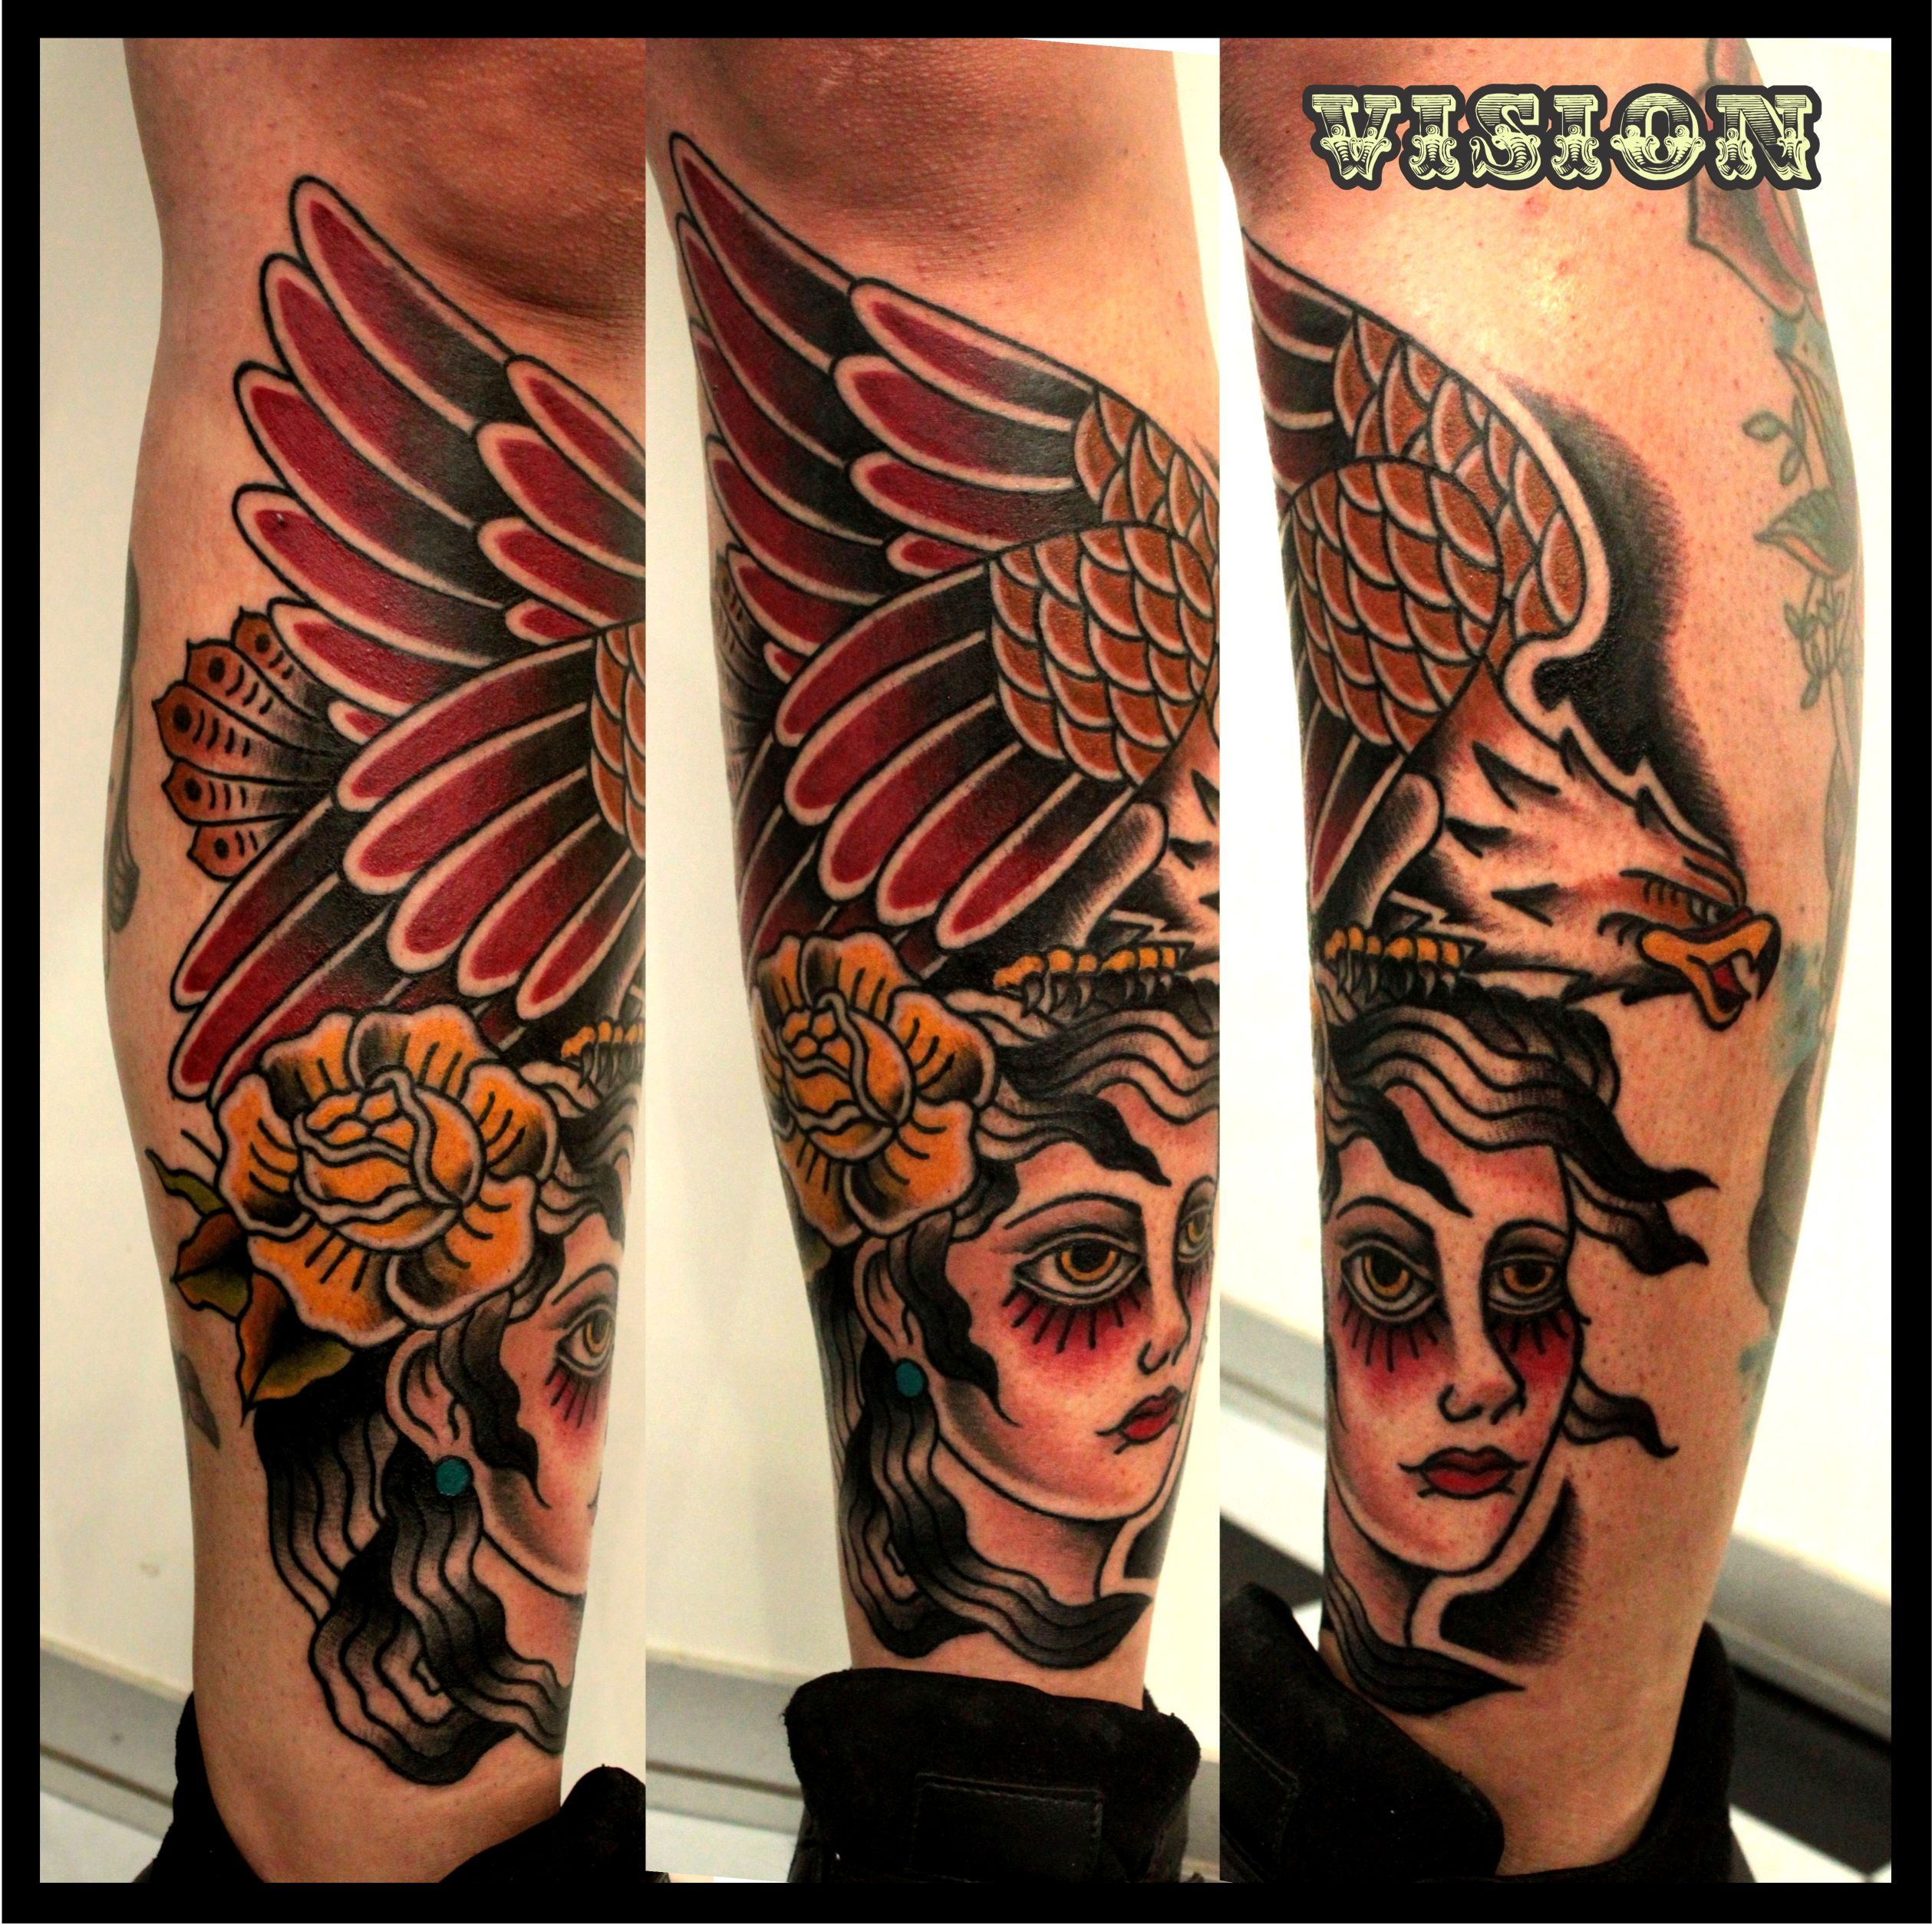 Tattoo old school tatuaggi old school pin up significato e foto quotes - Pin Up Girl Rose Eagle Tattoo Traditional Oldschool By Vision Renato